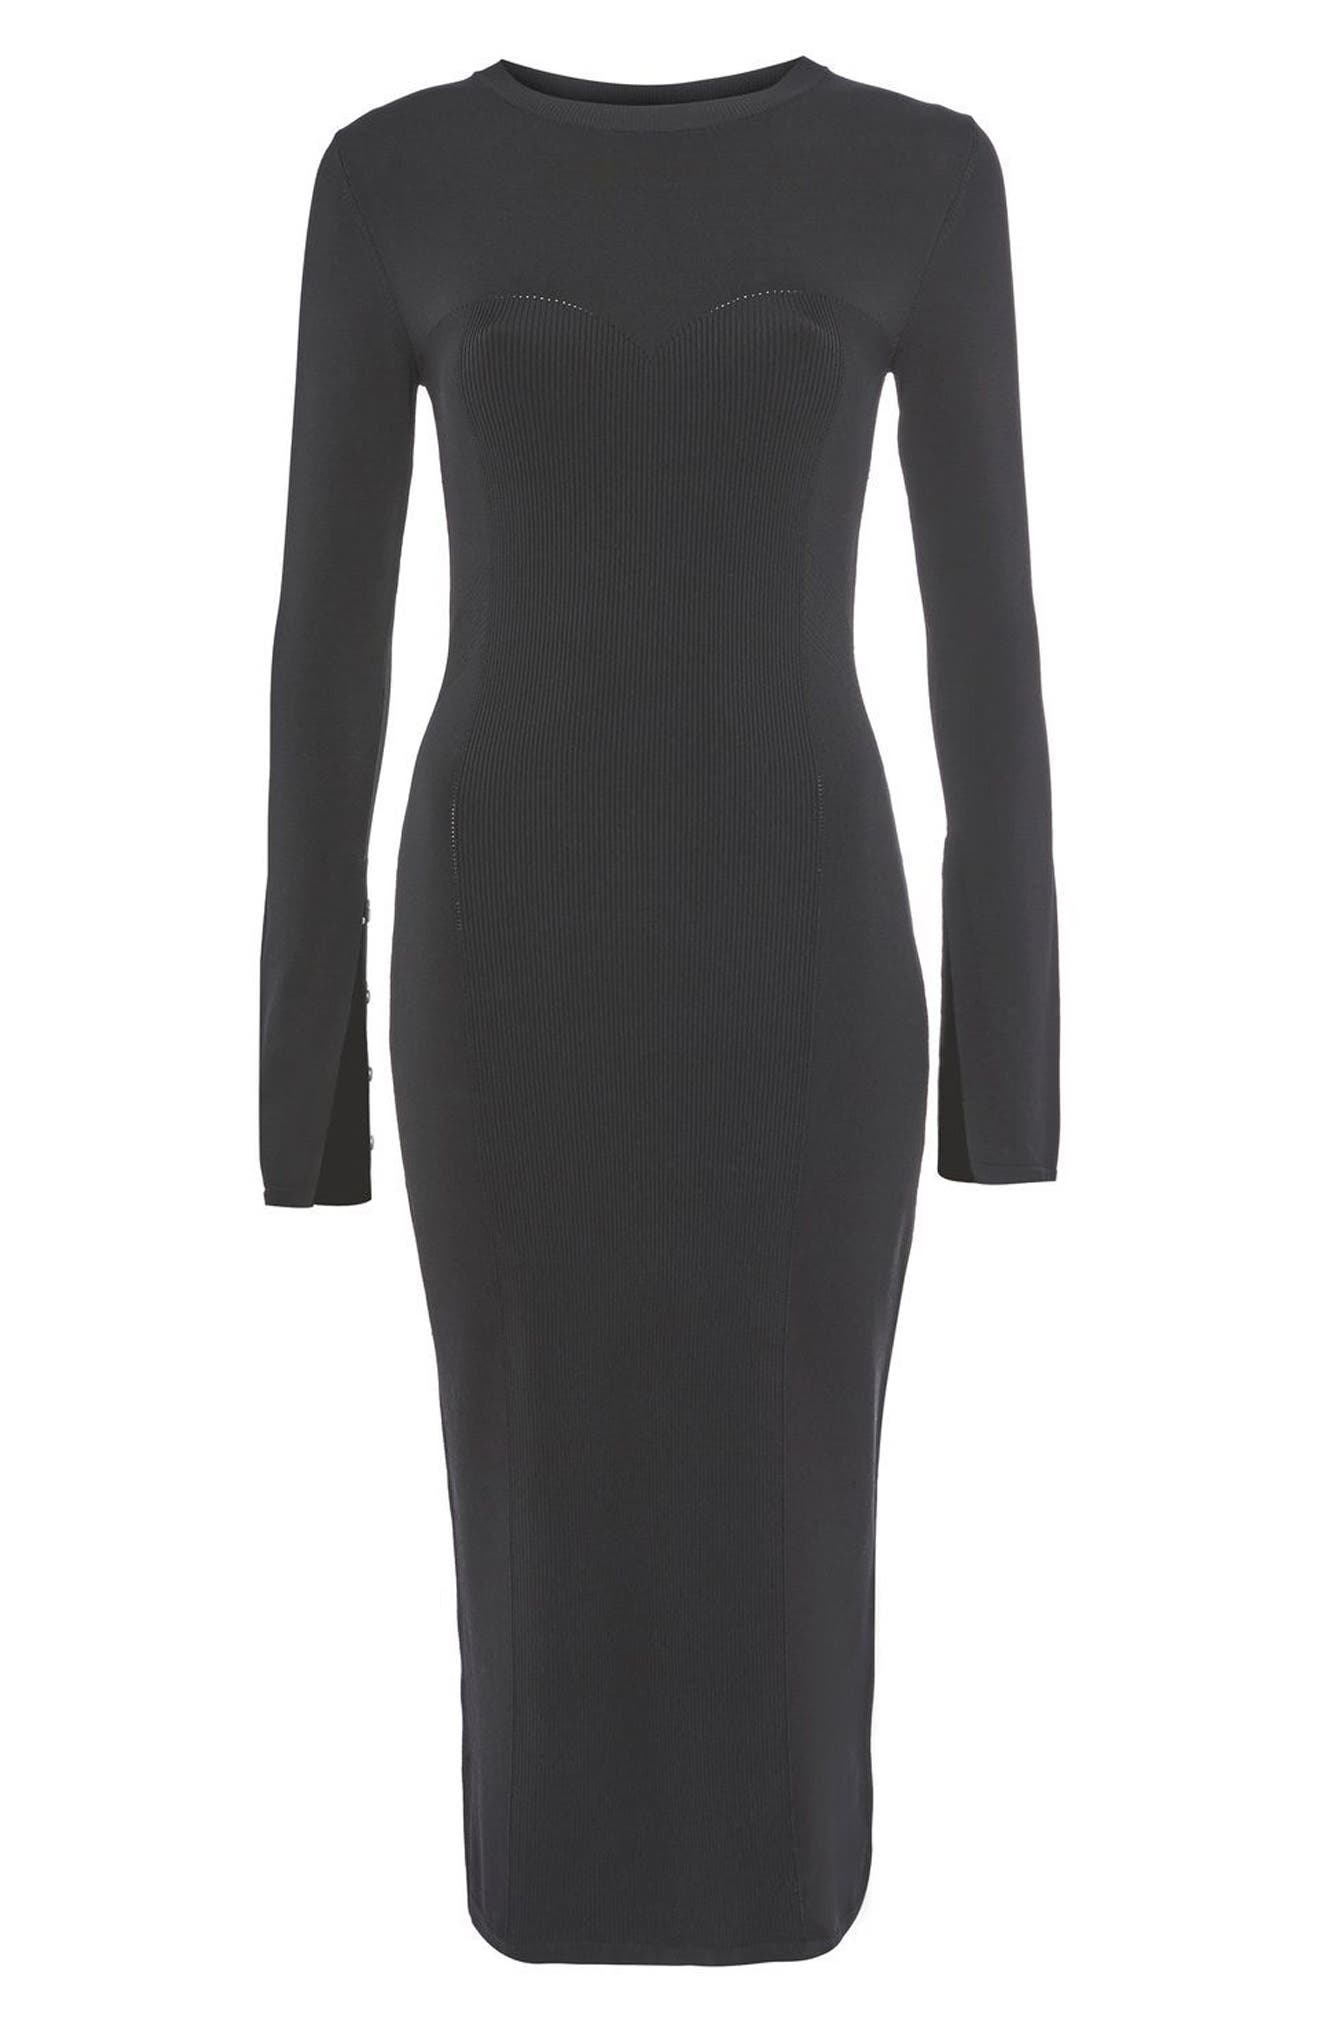 Topshop Pointelle Midi Dress,                             Main thumbnail 1, color,                             Black